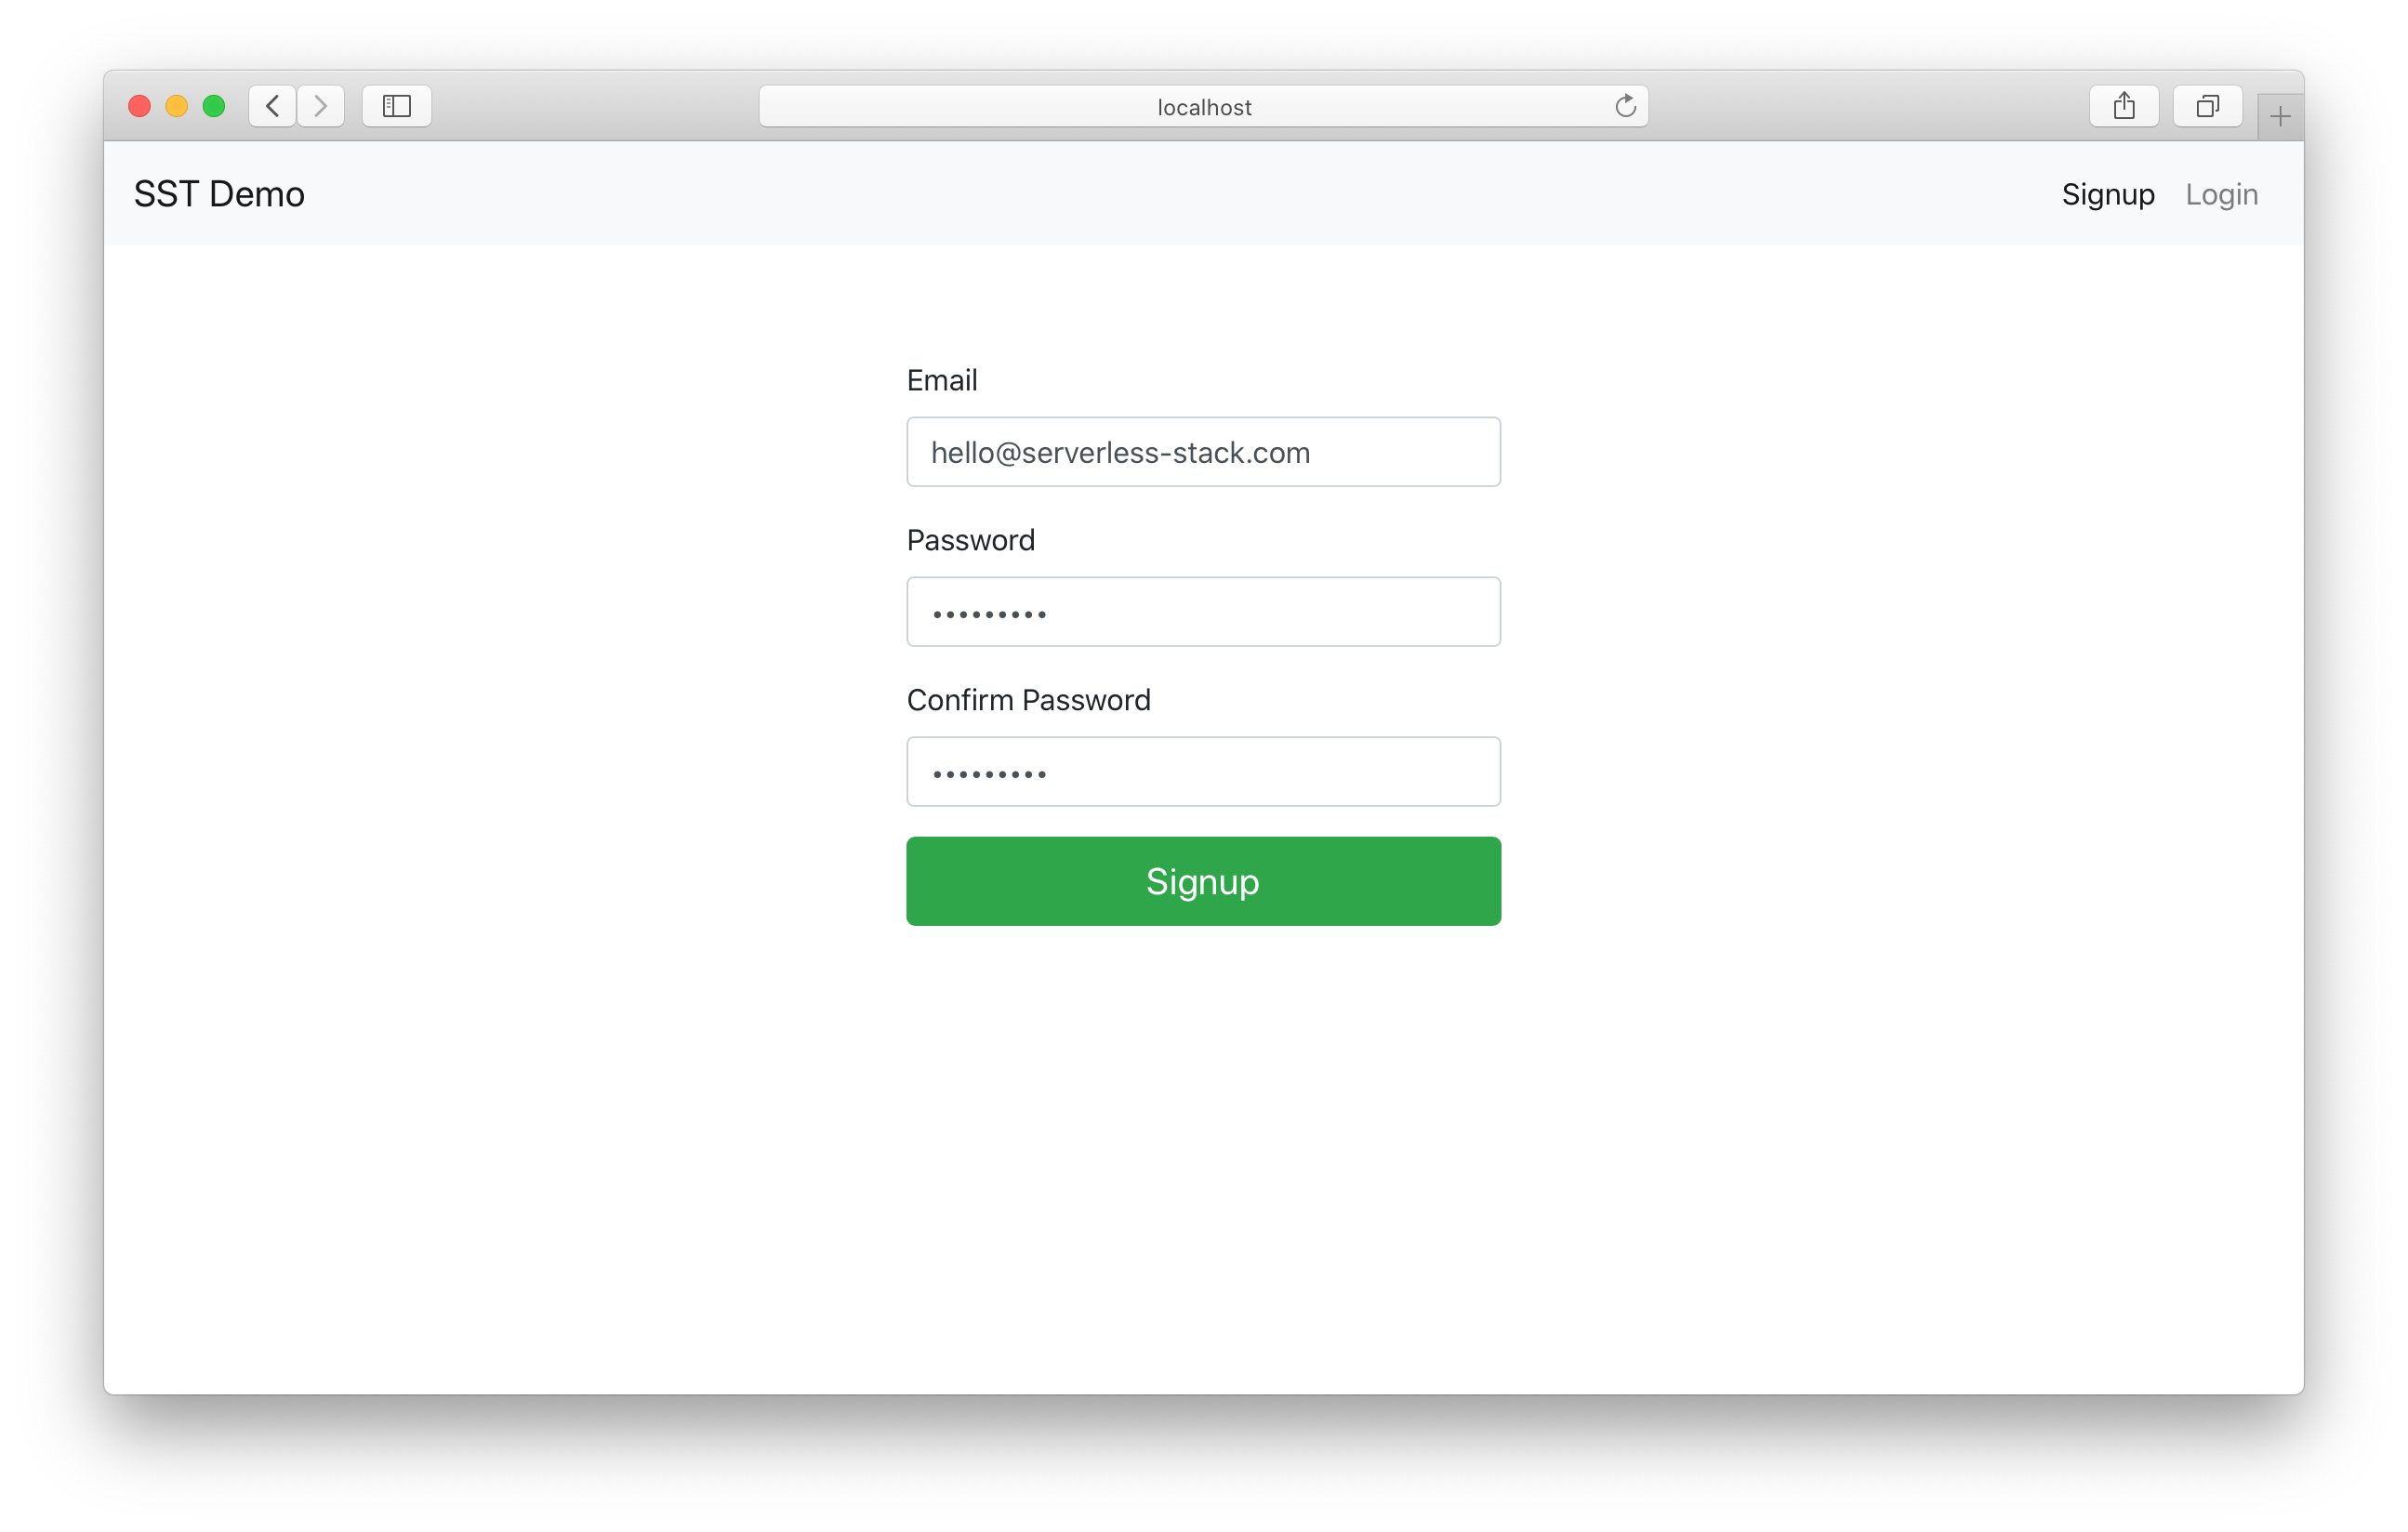 Sign up with Cognito in React.js app